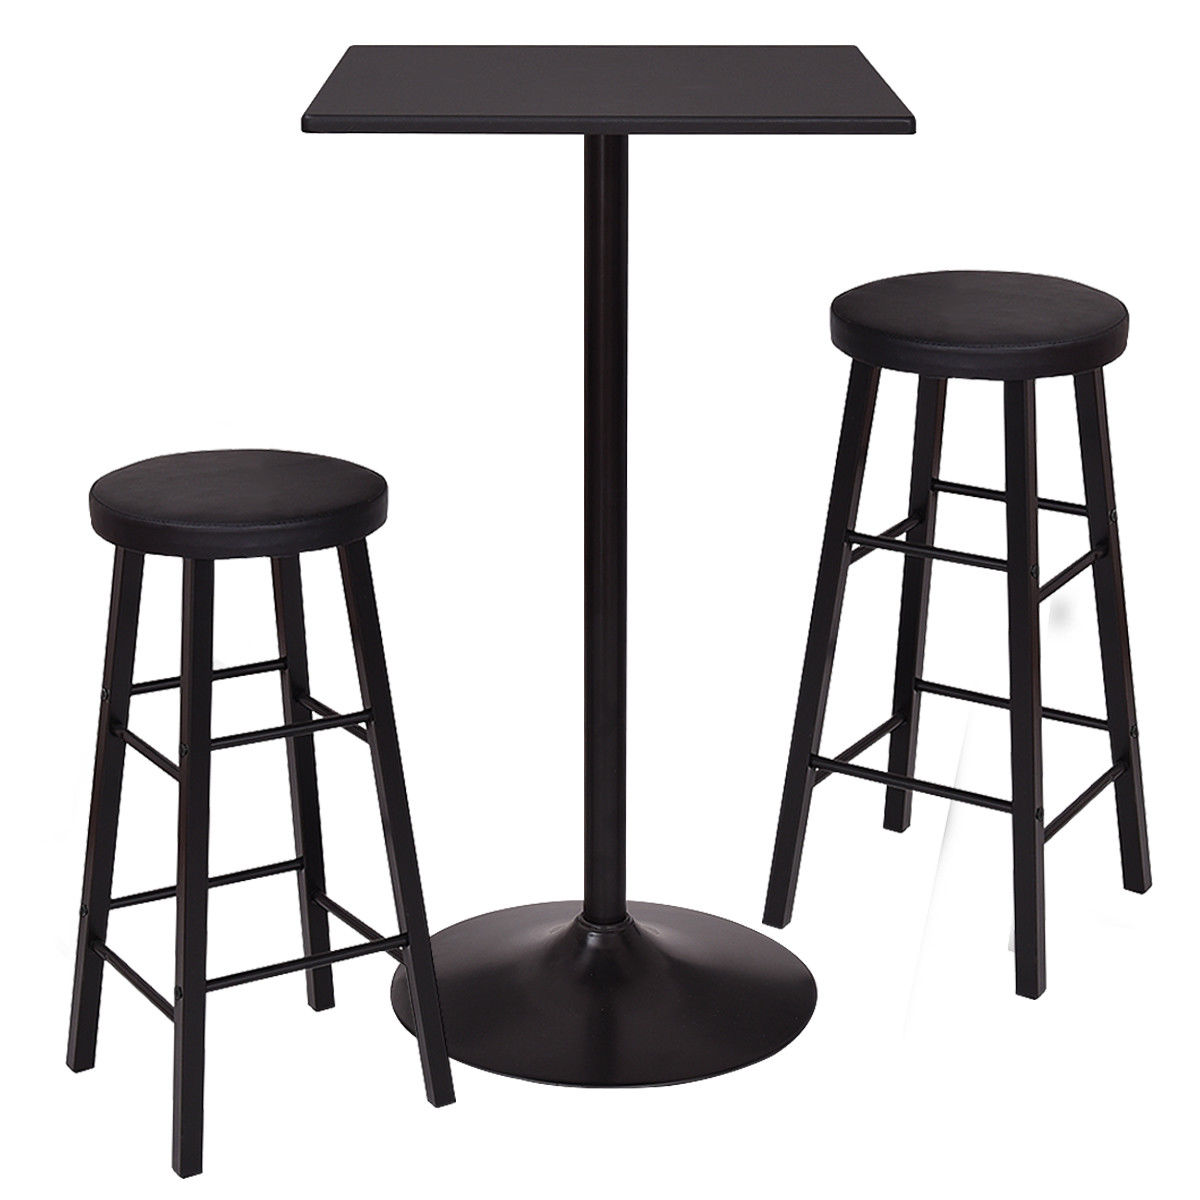 Gymax 3 Piece Square Bar table Dining Set Kitchen Furniture